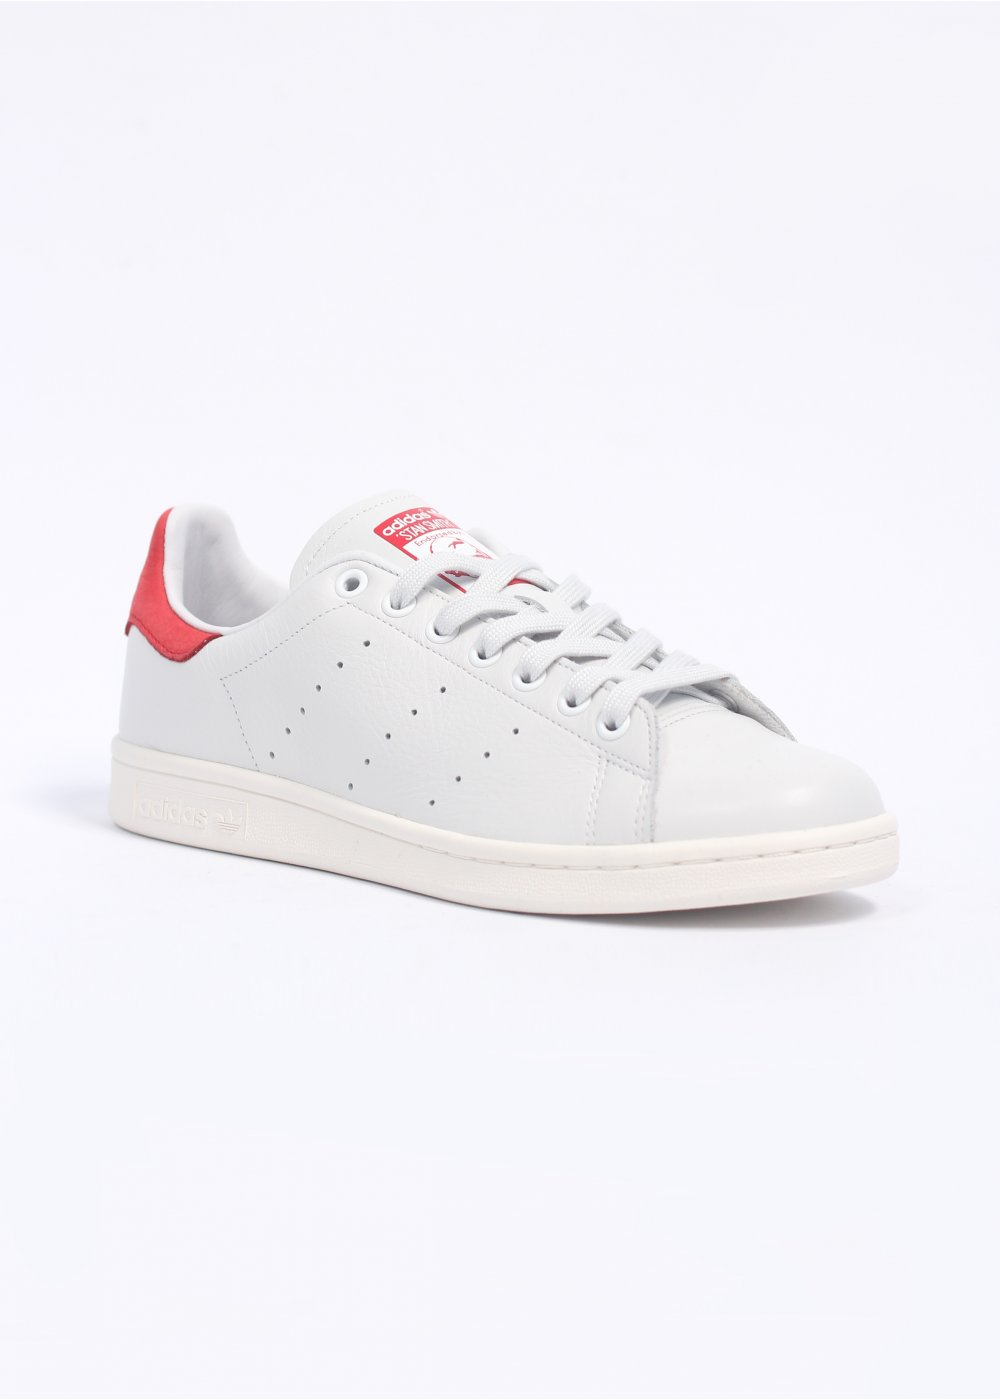 adidas stan smith rosse vintage